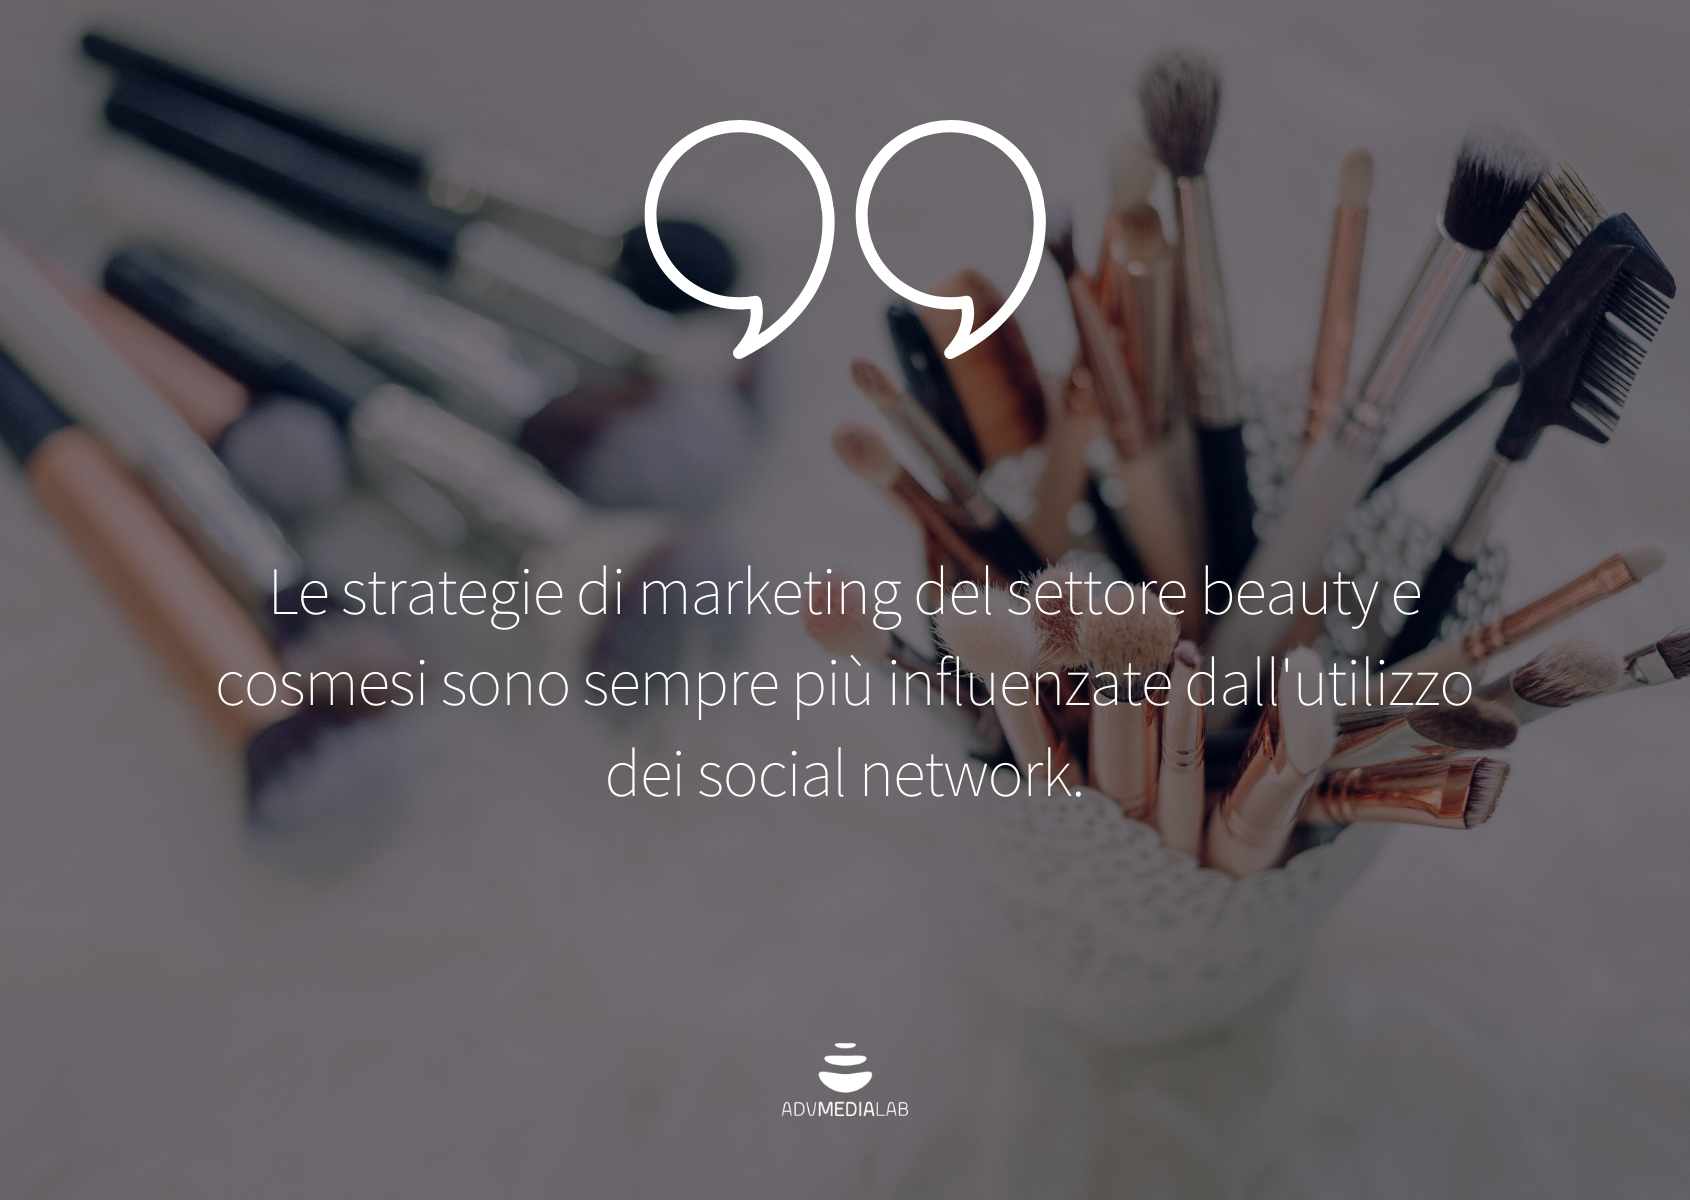 Inbound cosmesi strategie quote